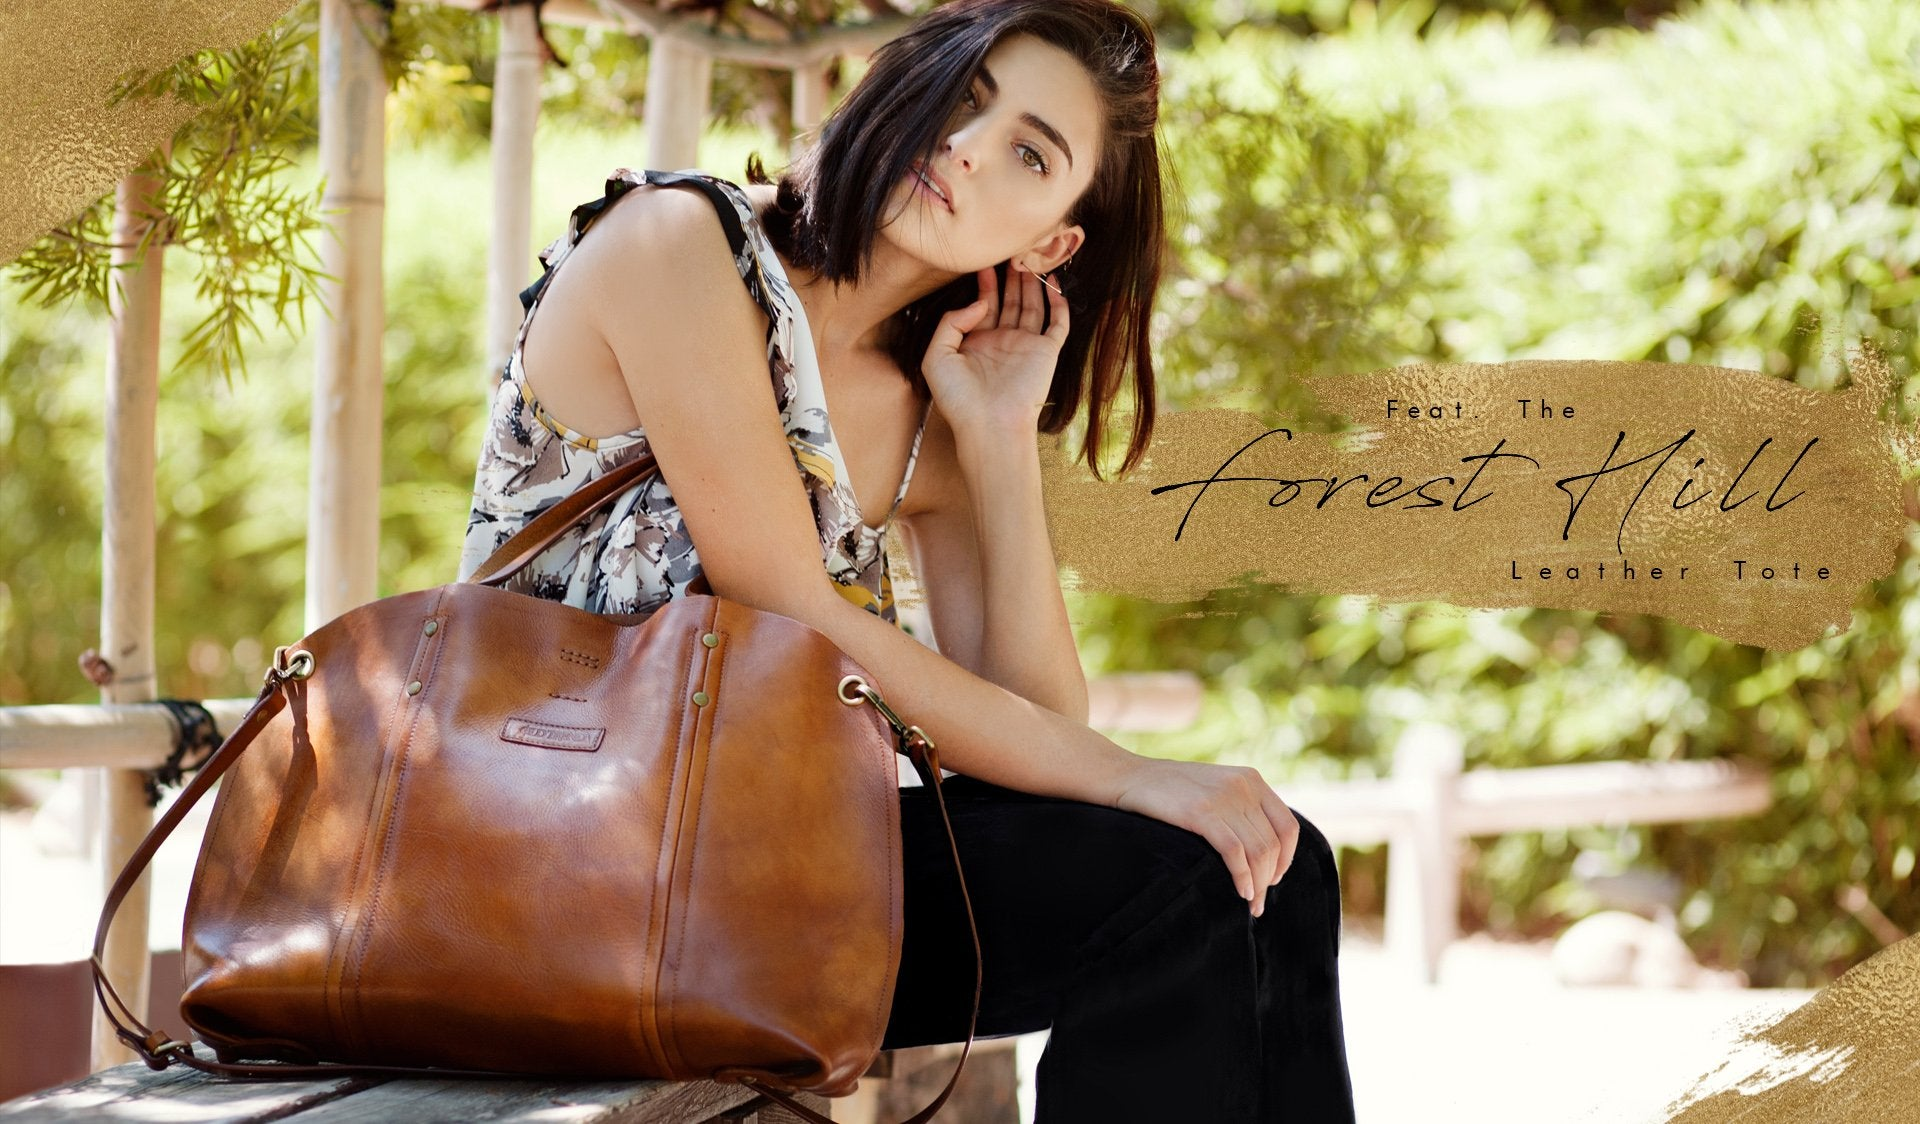 Featuring the Wind Leaf Tote